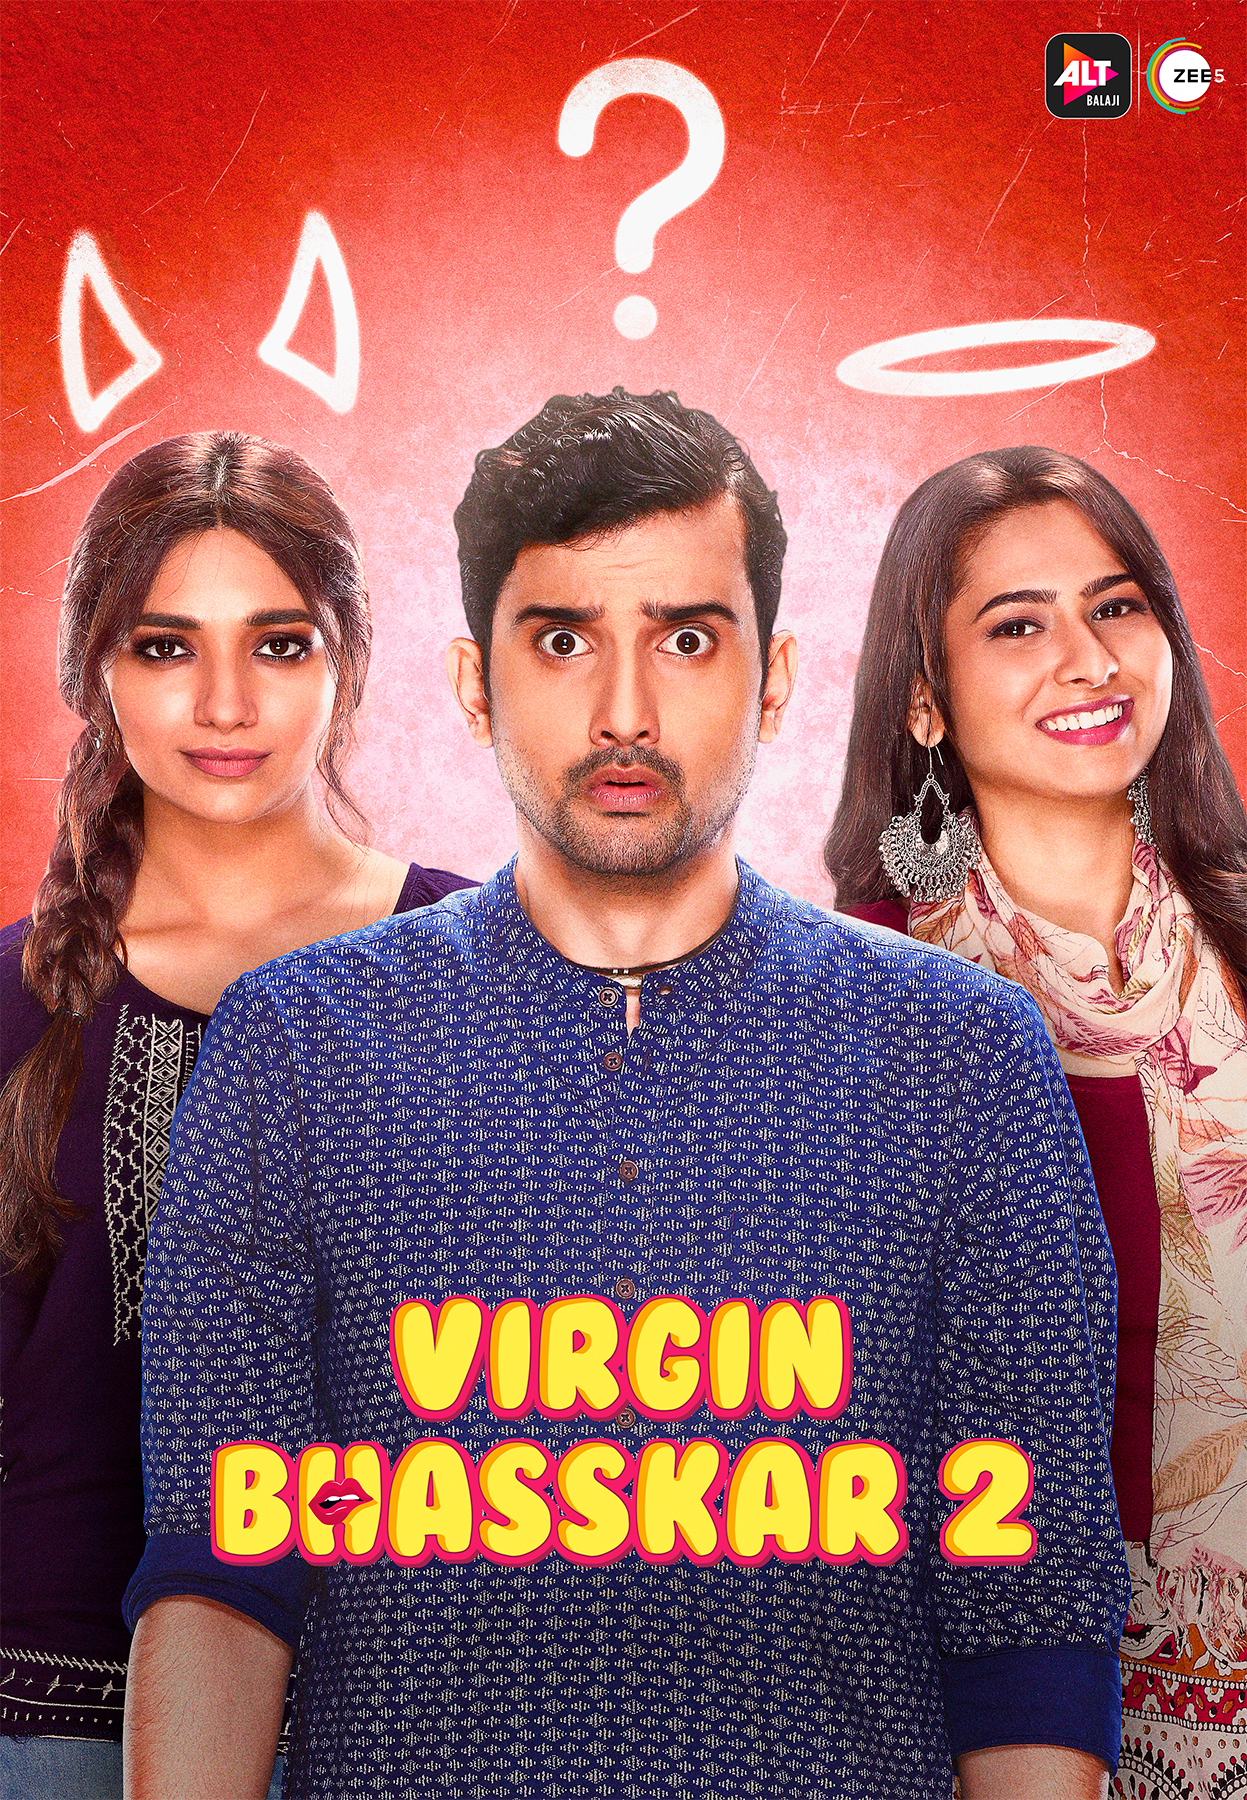 Virgin Bhasskar Complete Season 2